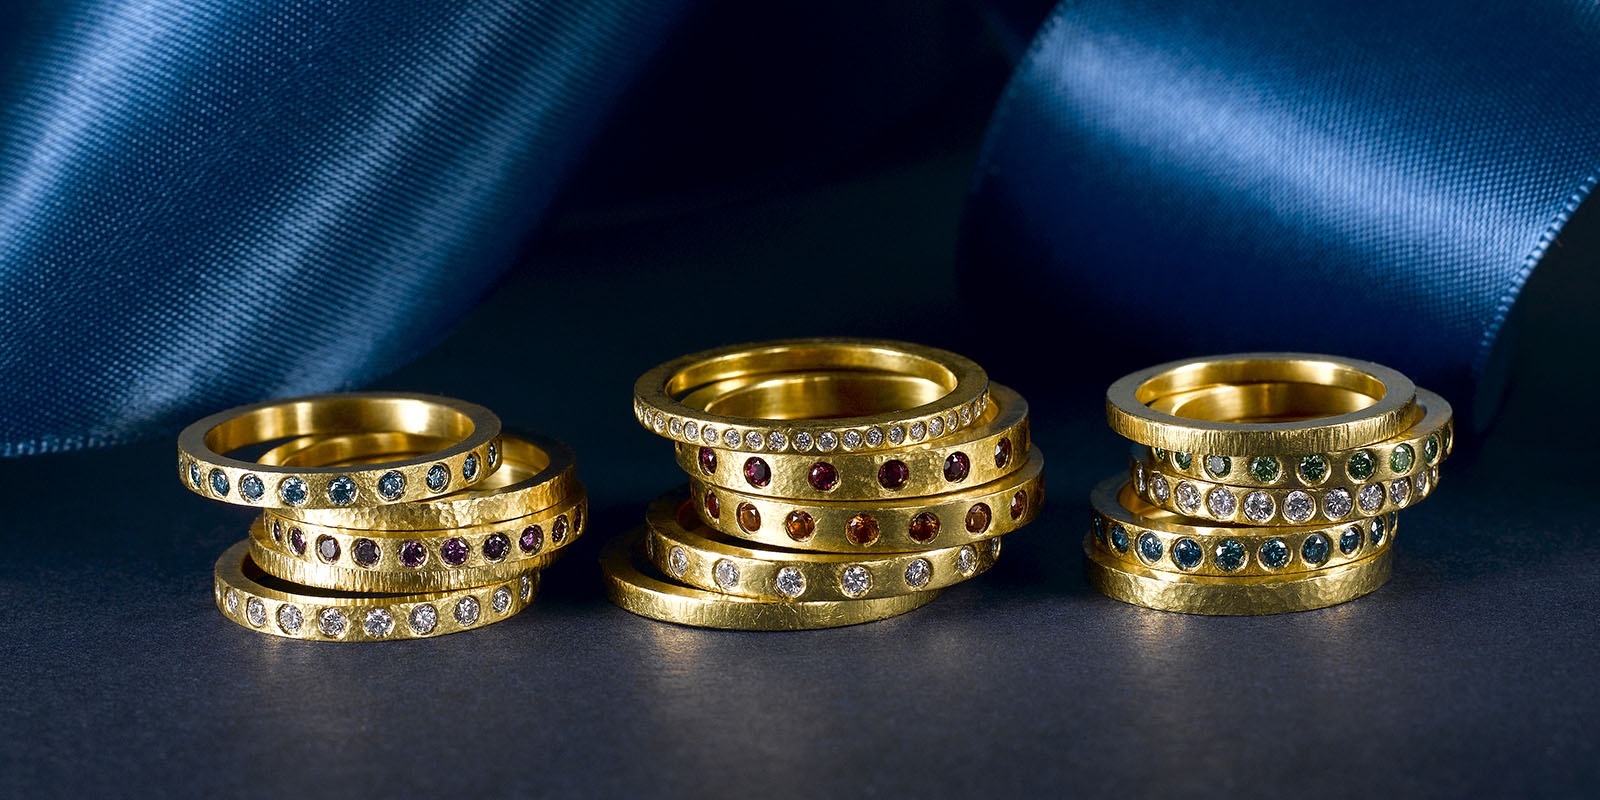 Stacking bands. 22 karat gold, white and color diamonds